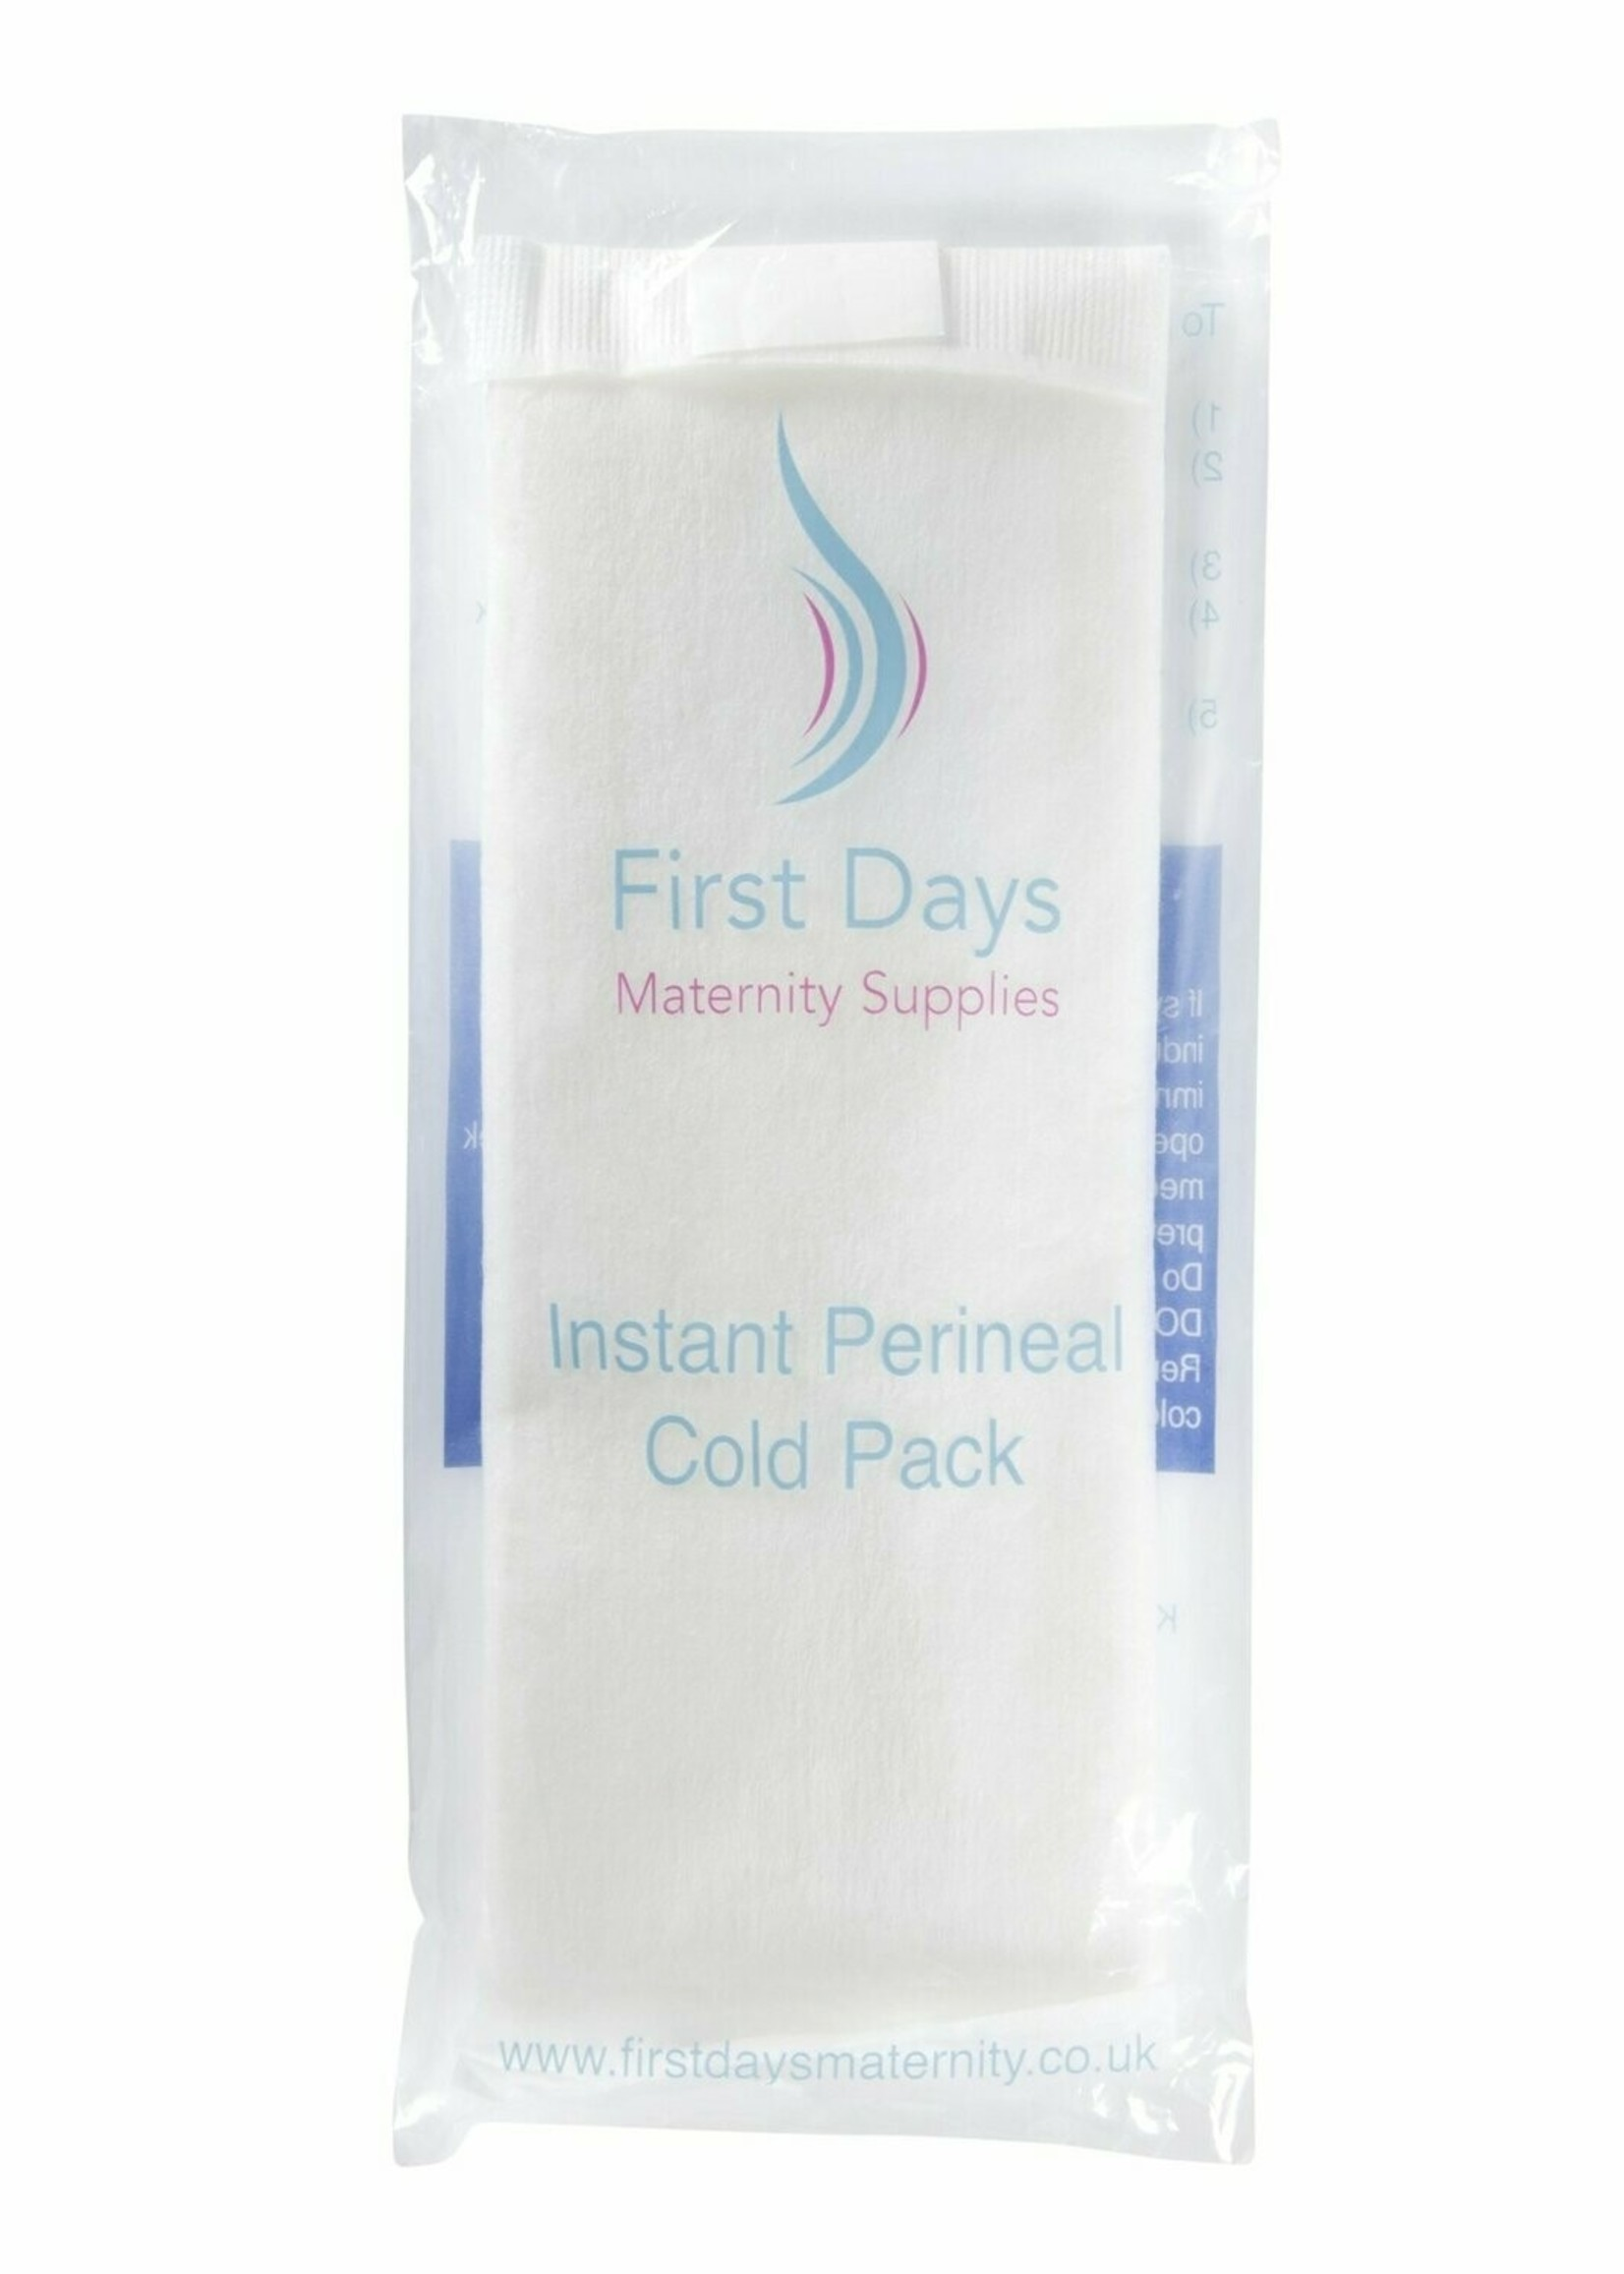 Perineal Cold Pack